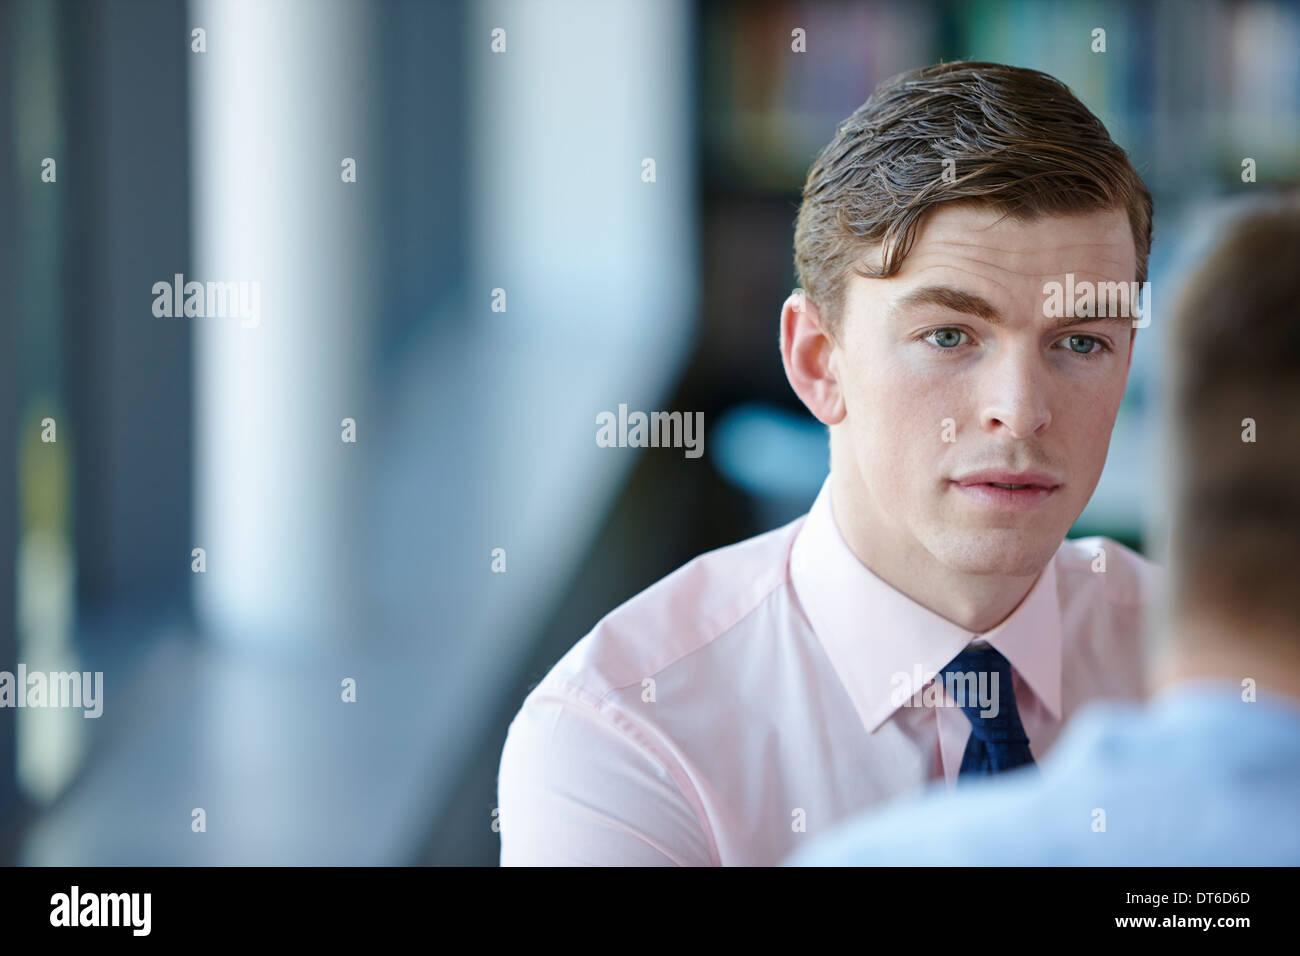 Young businessman in shirt and tie - Stock Image